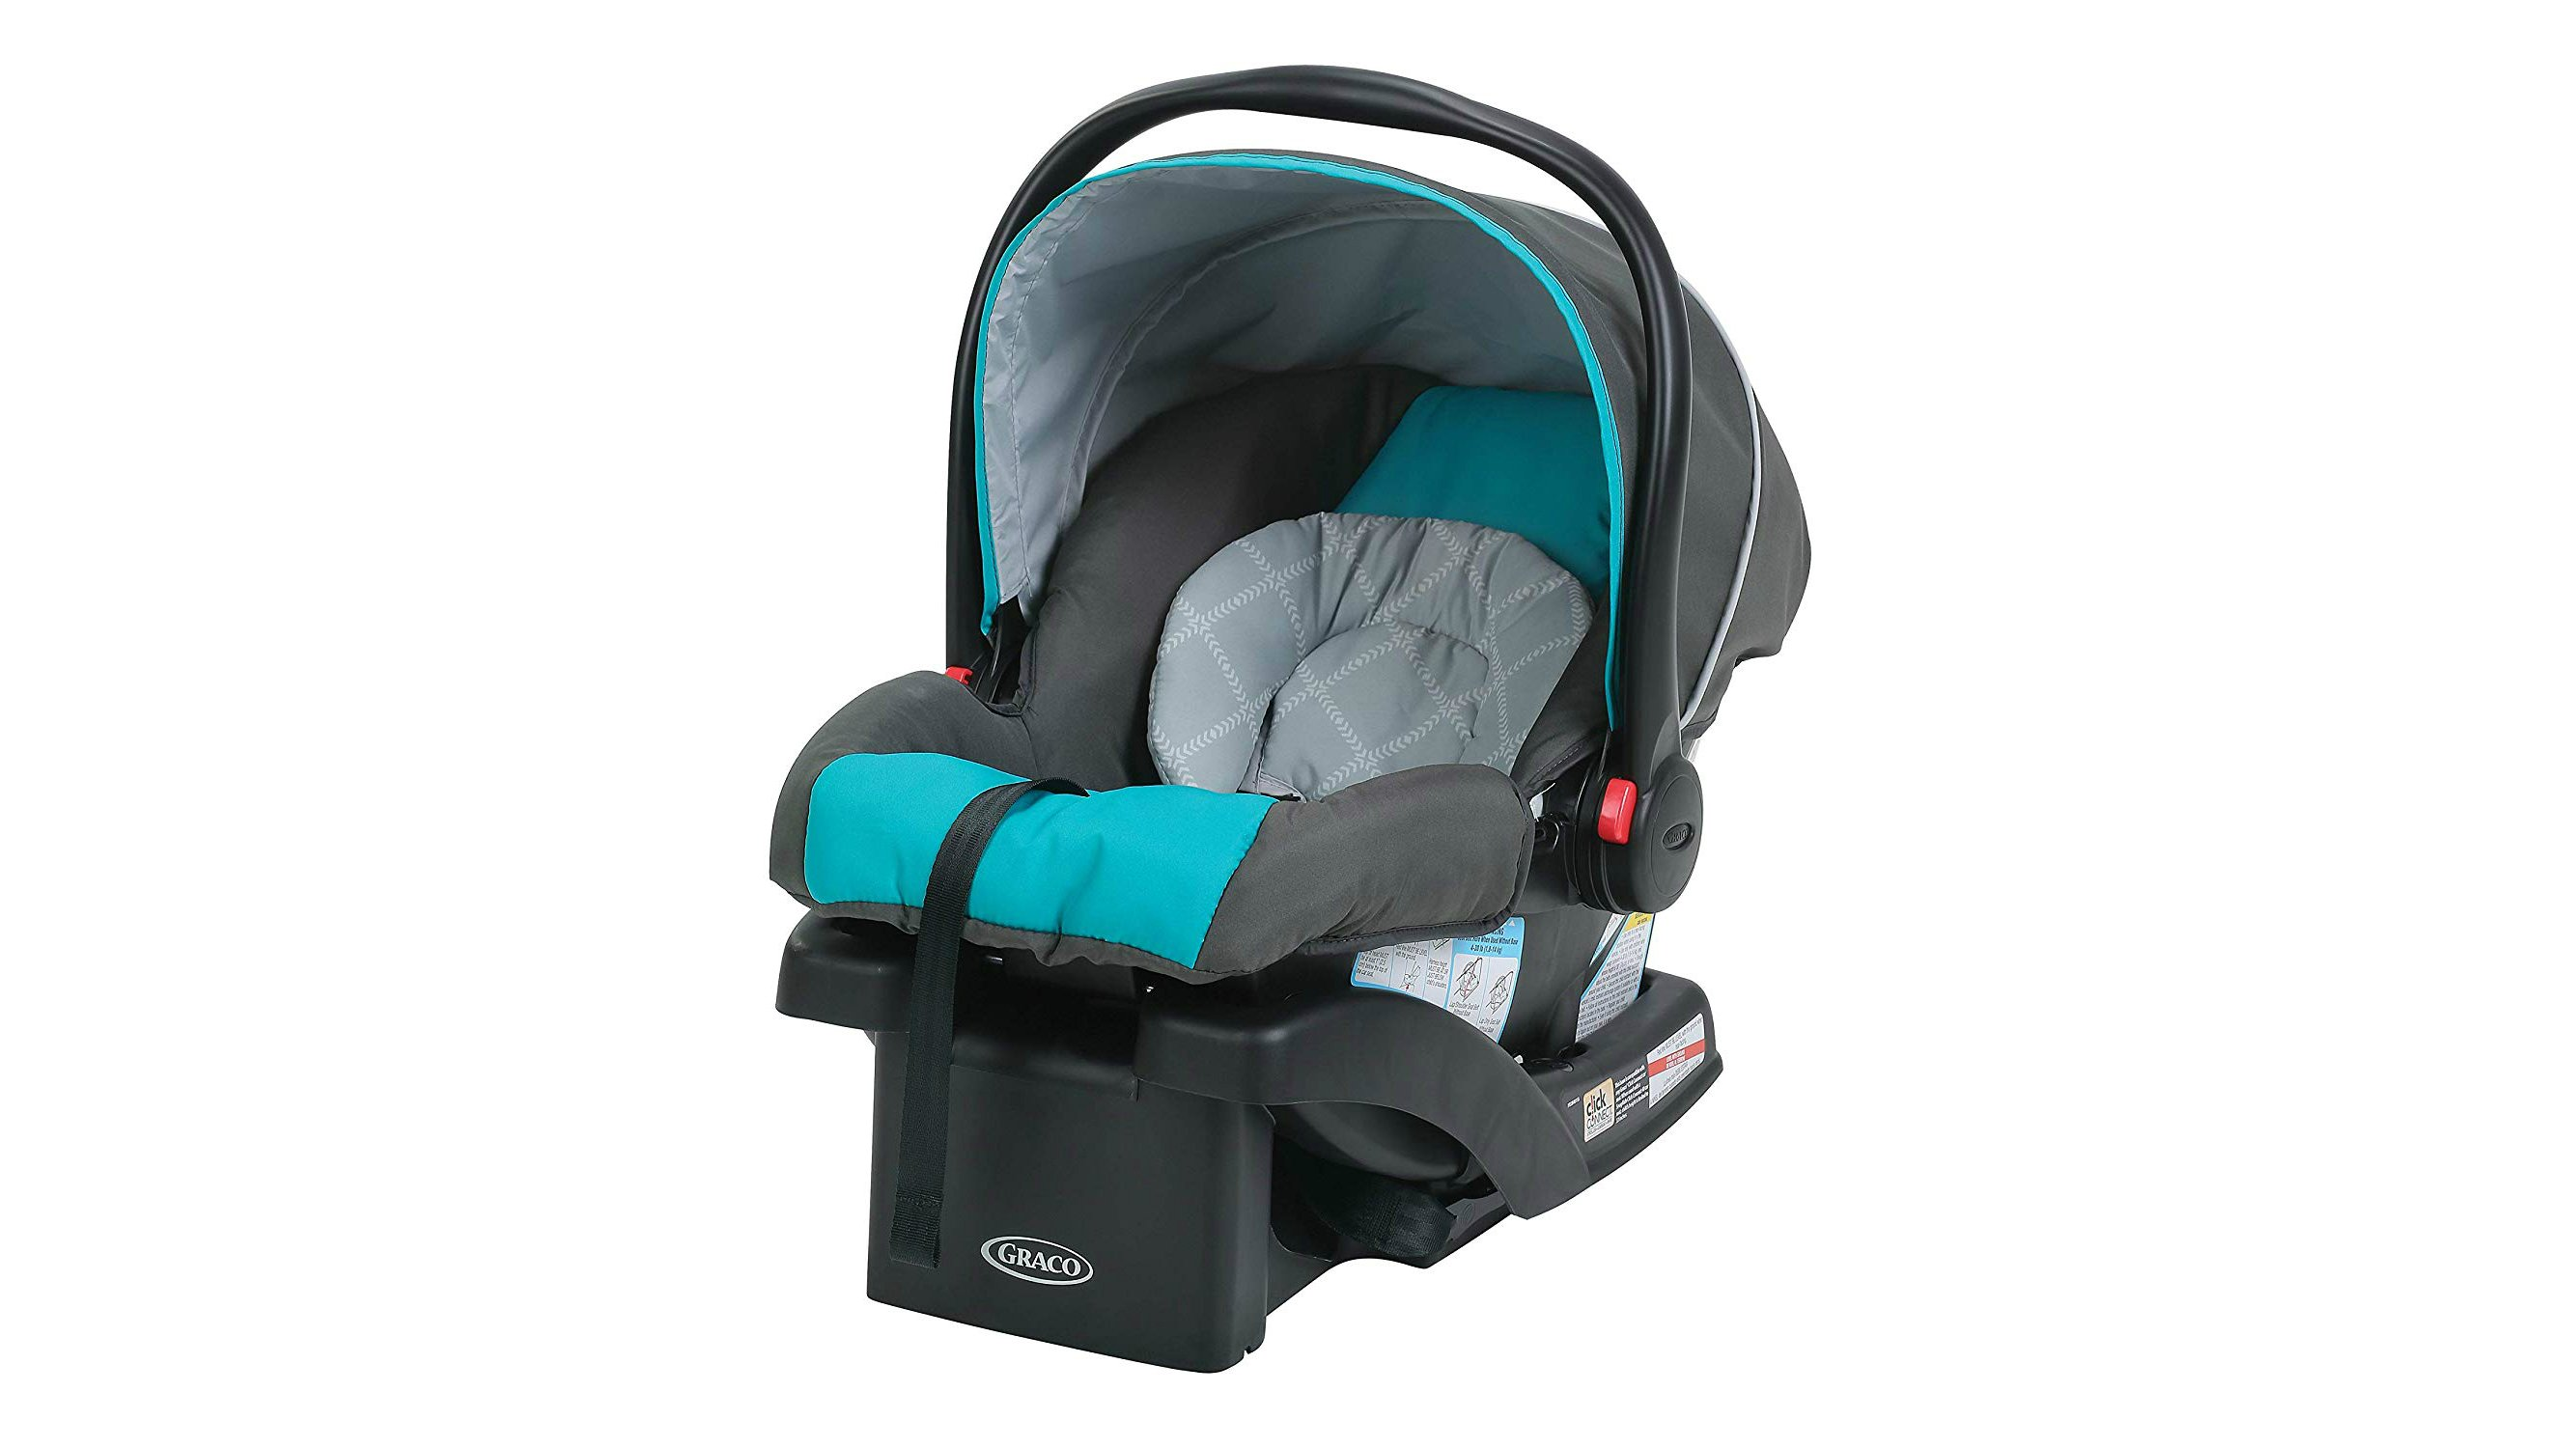 Groovy Best Car Seats Us 2019 The Best Infant Convertible And 3 Spiritservingveterans Wood Chair Design Ideas Spiritservingveteransorg